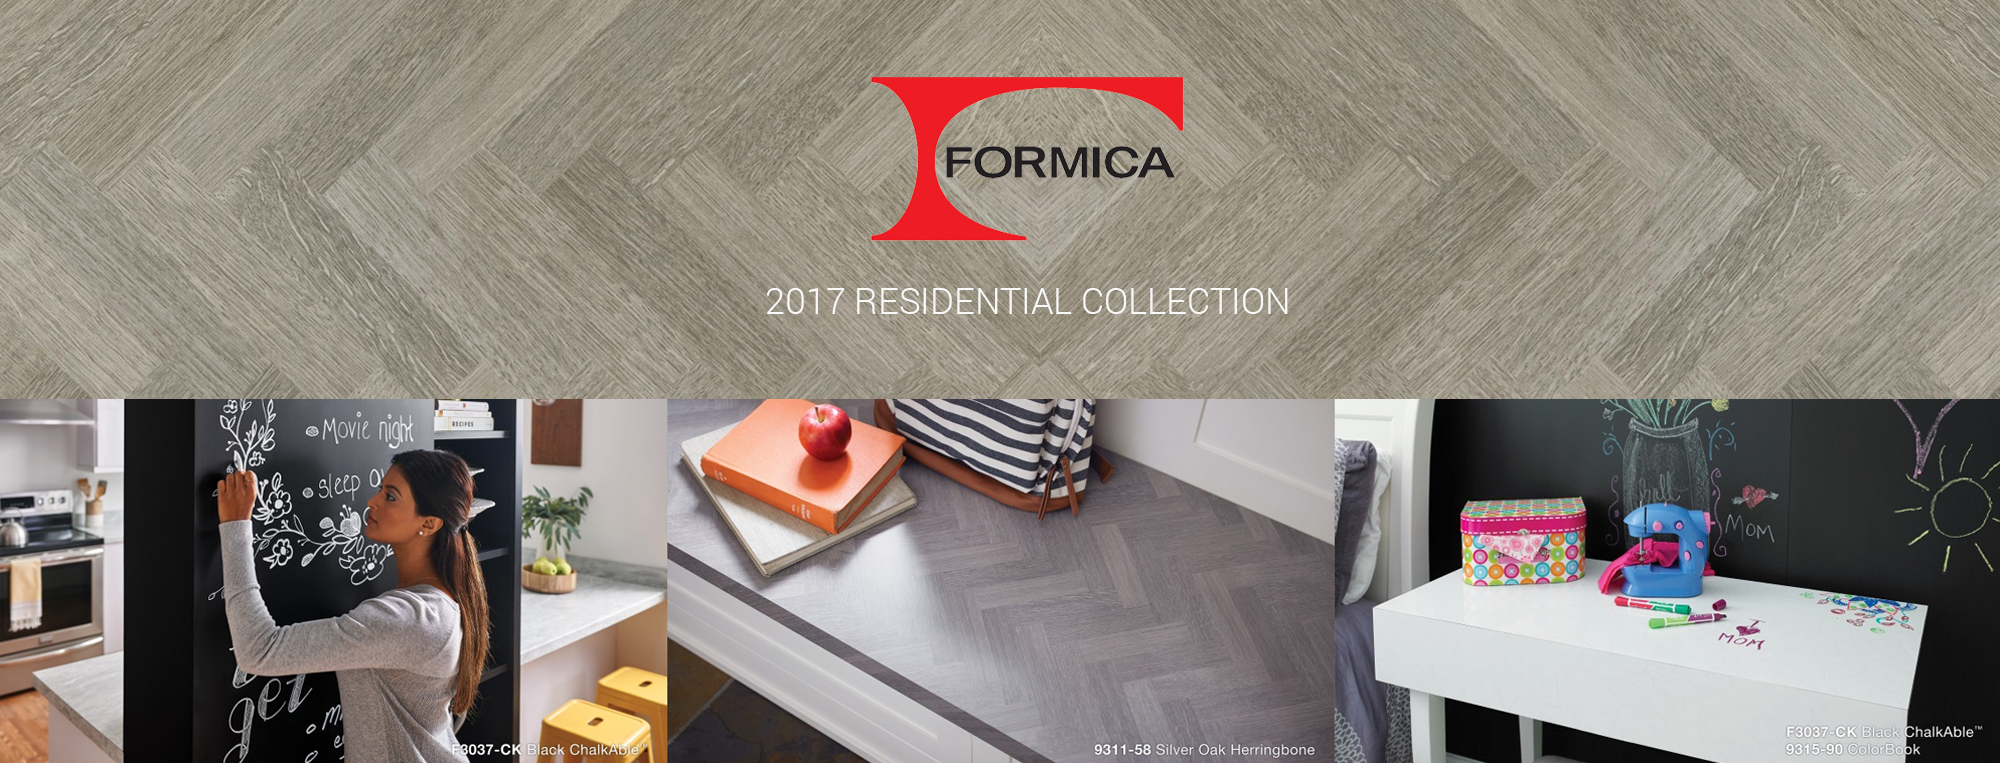 Formica-Residential-Collection